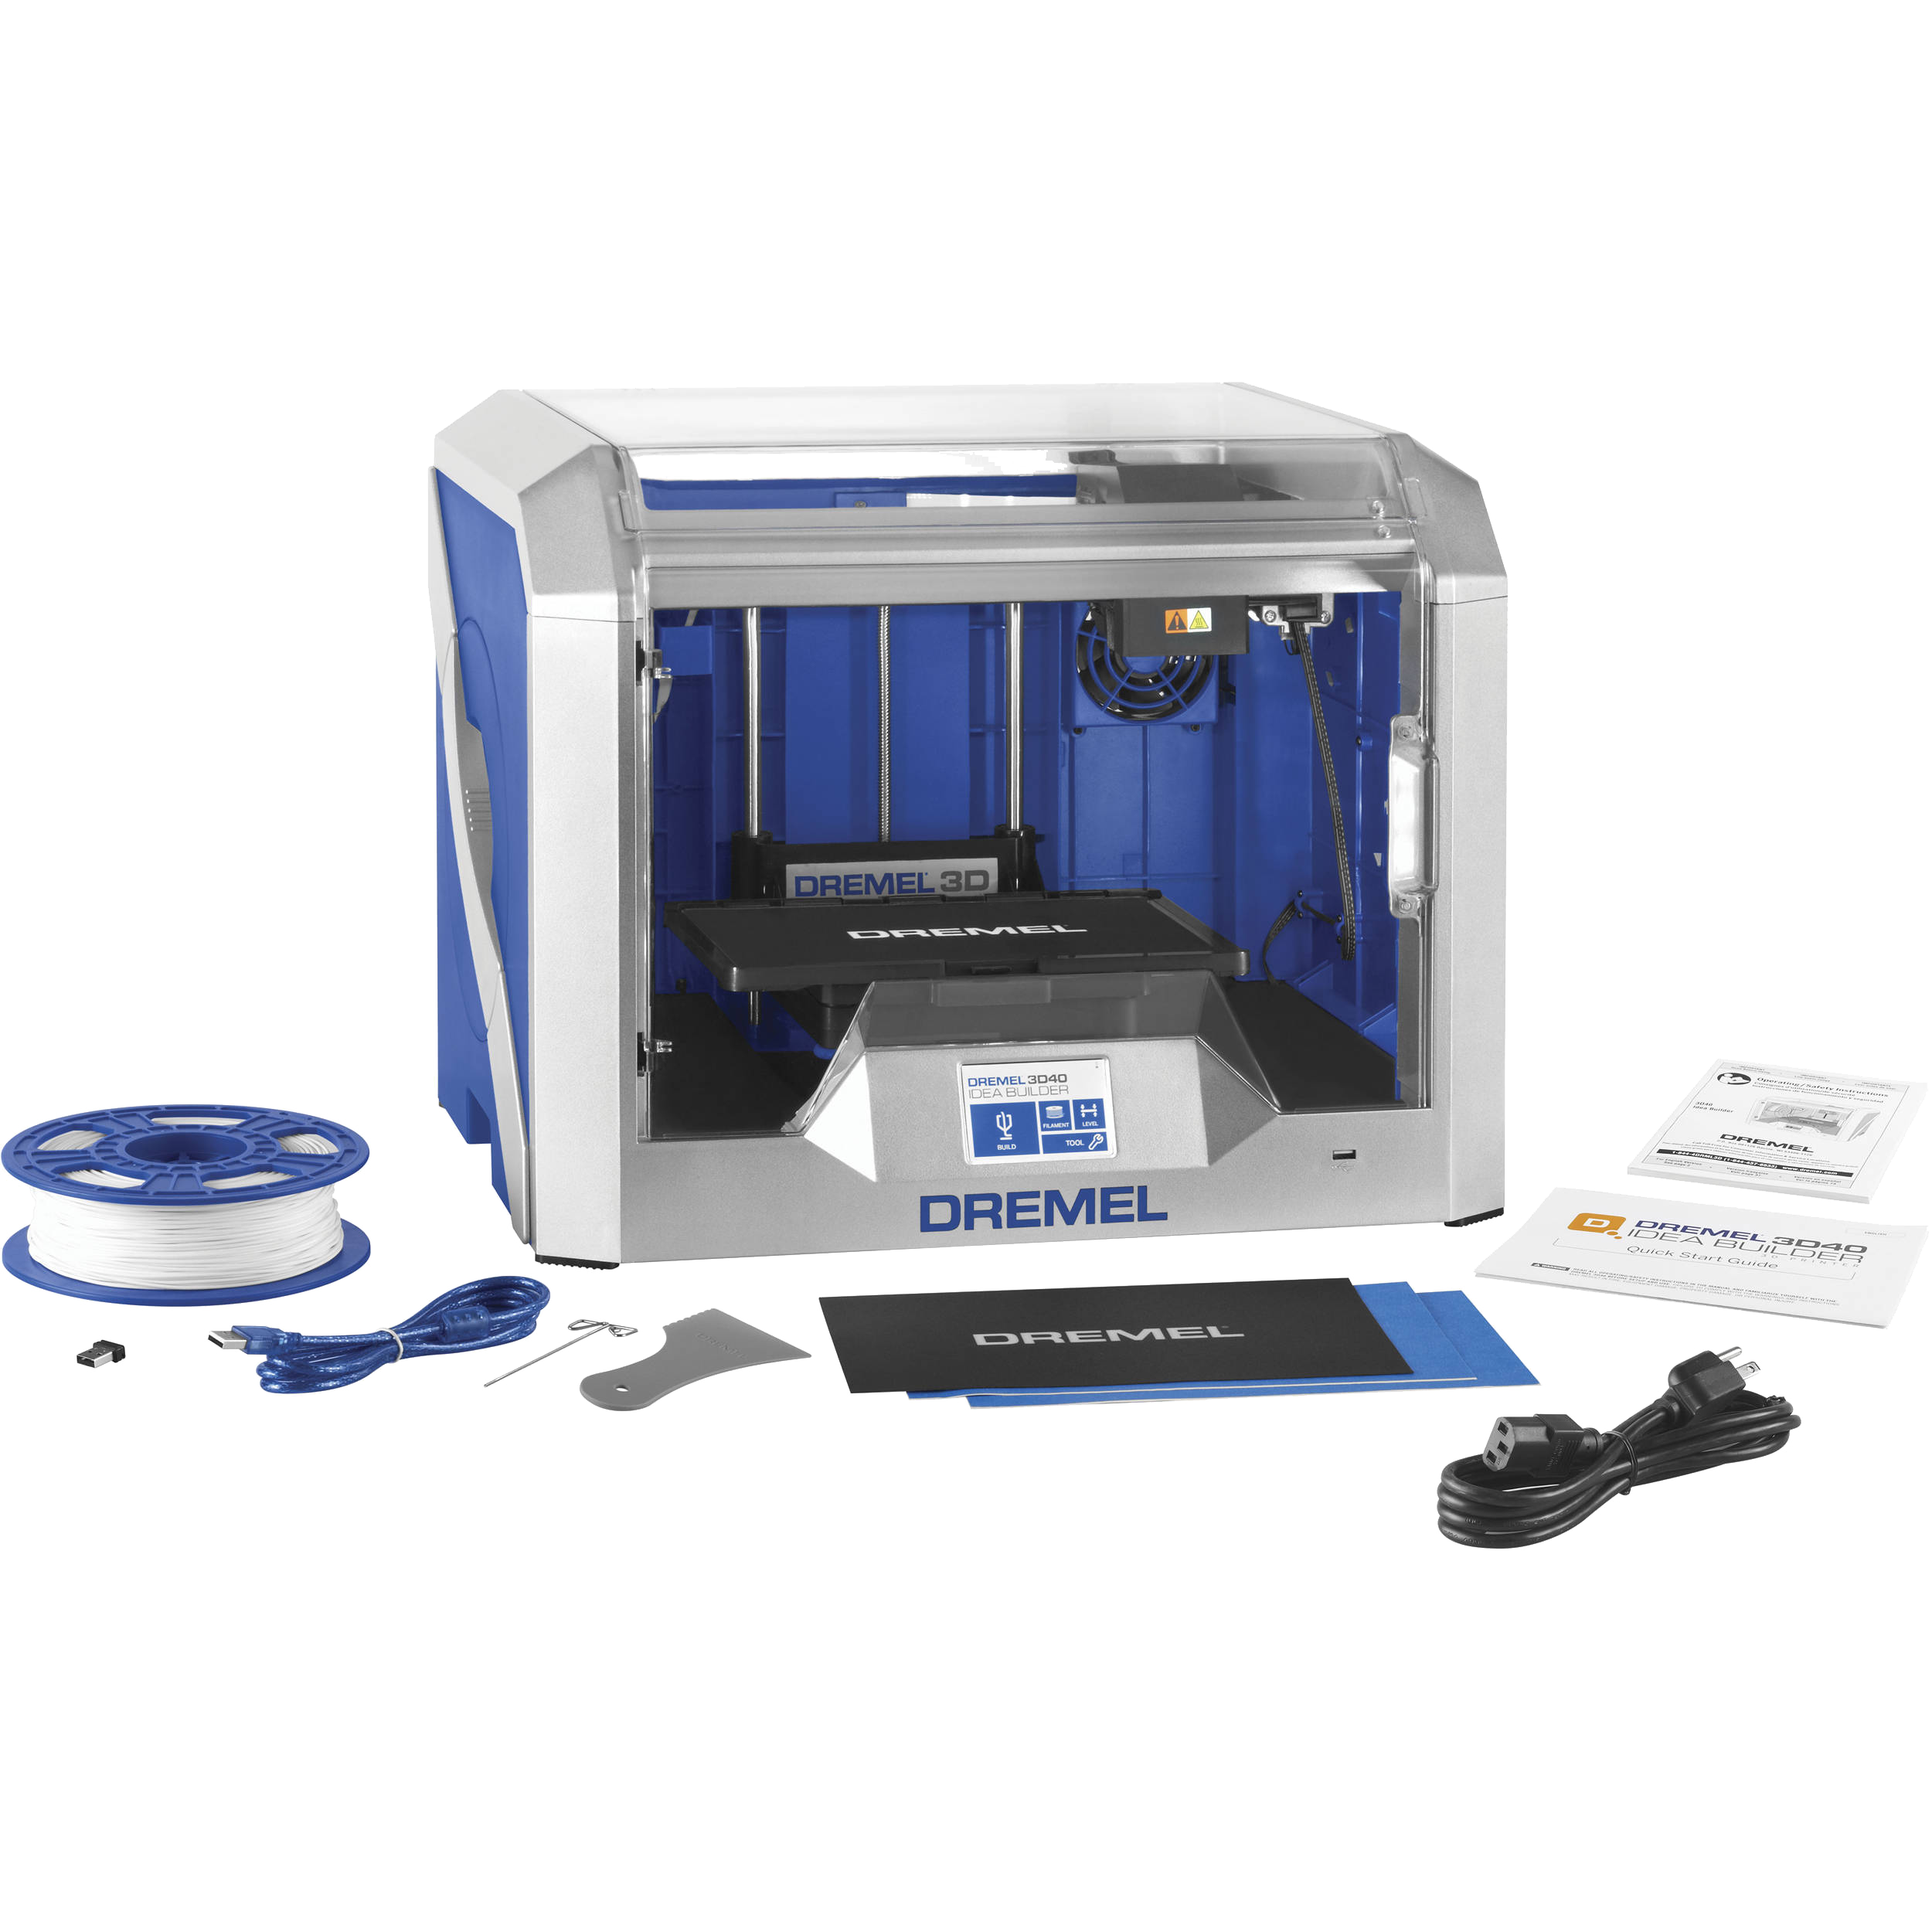 RobotLAB_MakerBot_Education_Bundle.png